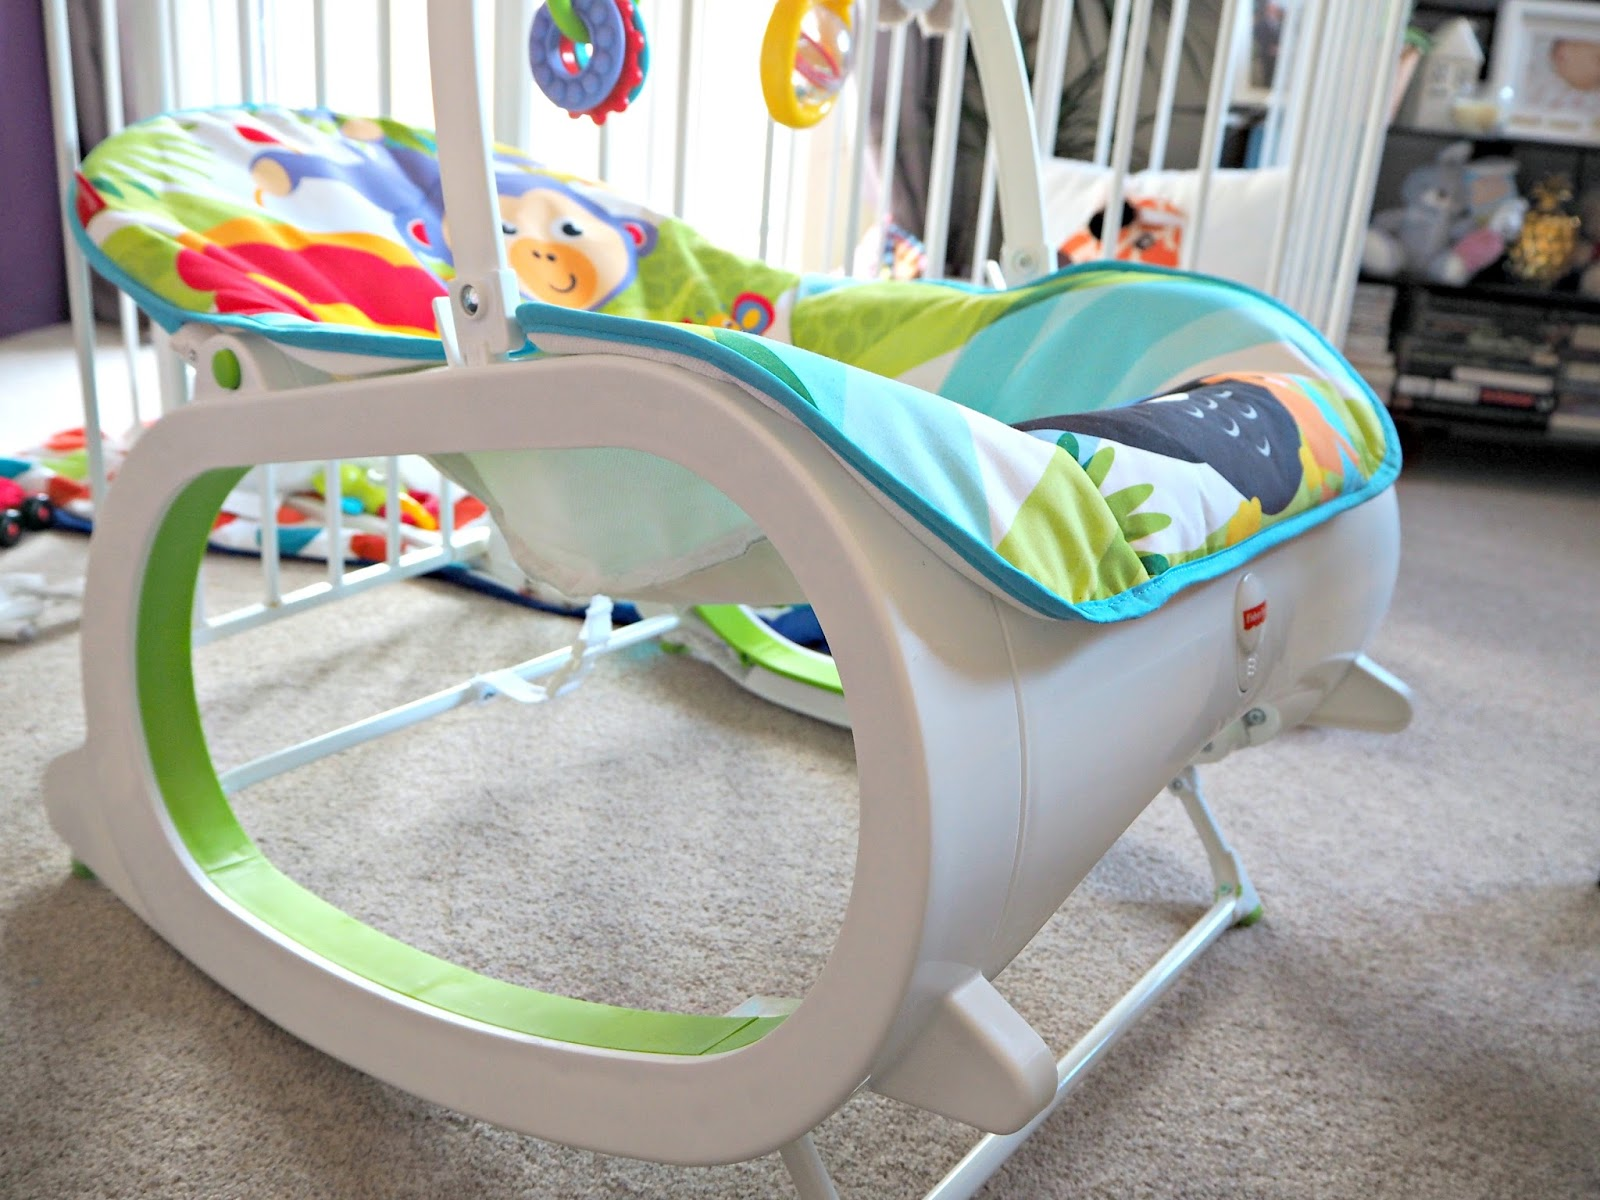 The baby rocker that you need for your little one | infant-to-toddler rocker | Fisher-Price | www.lovemaisie.com